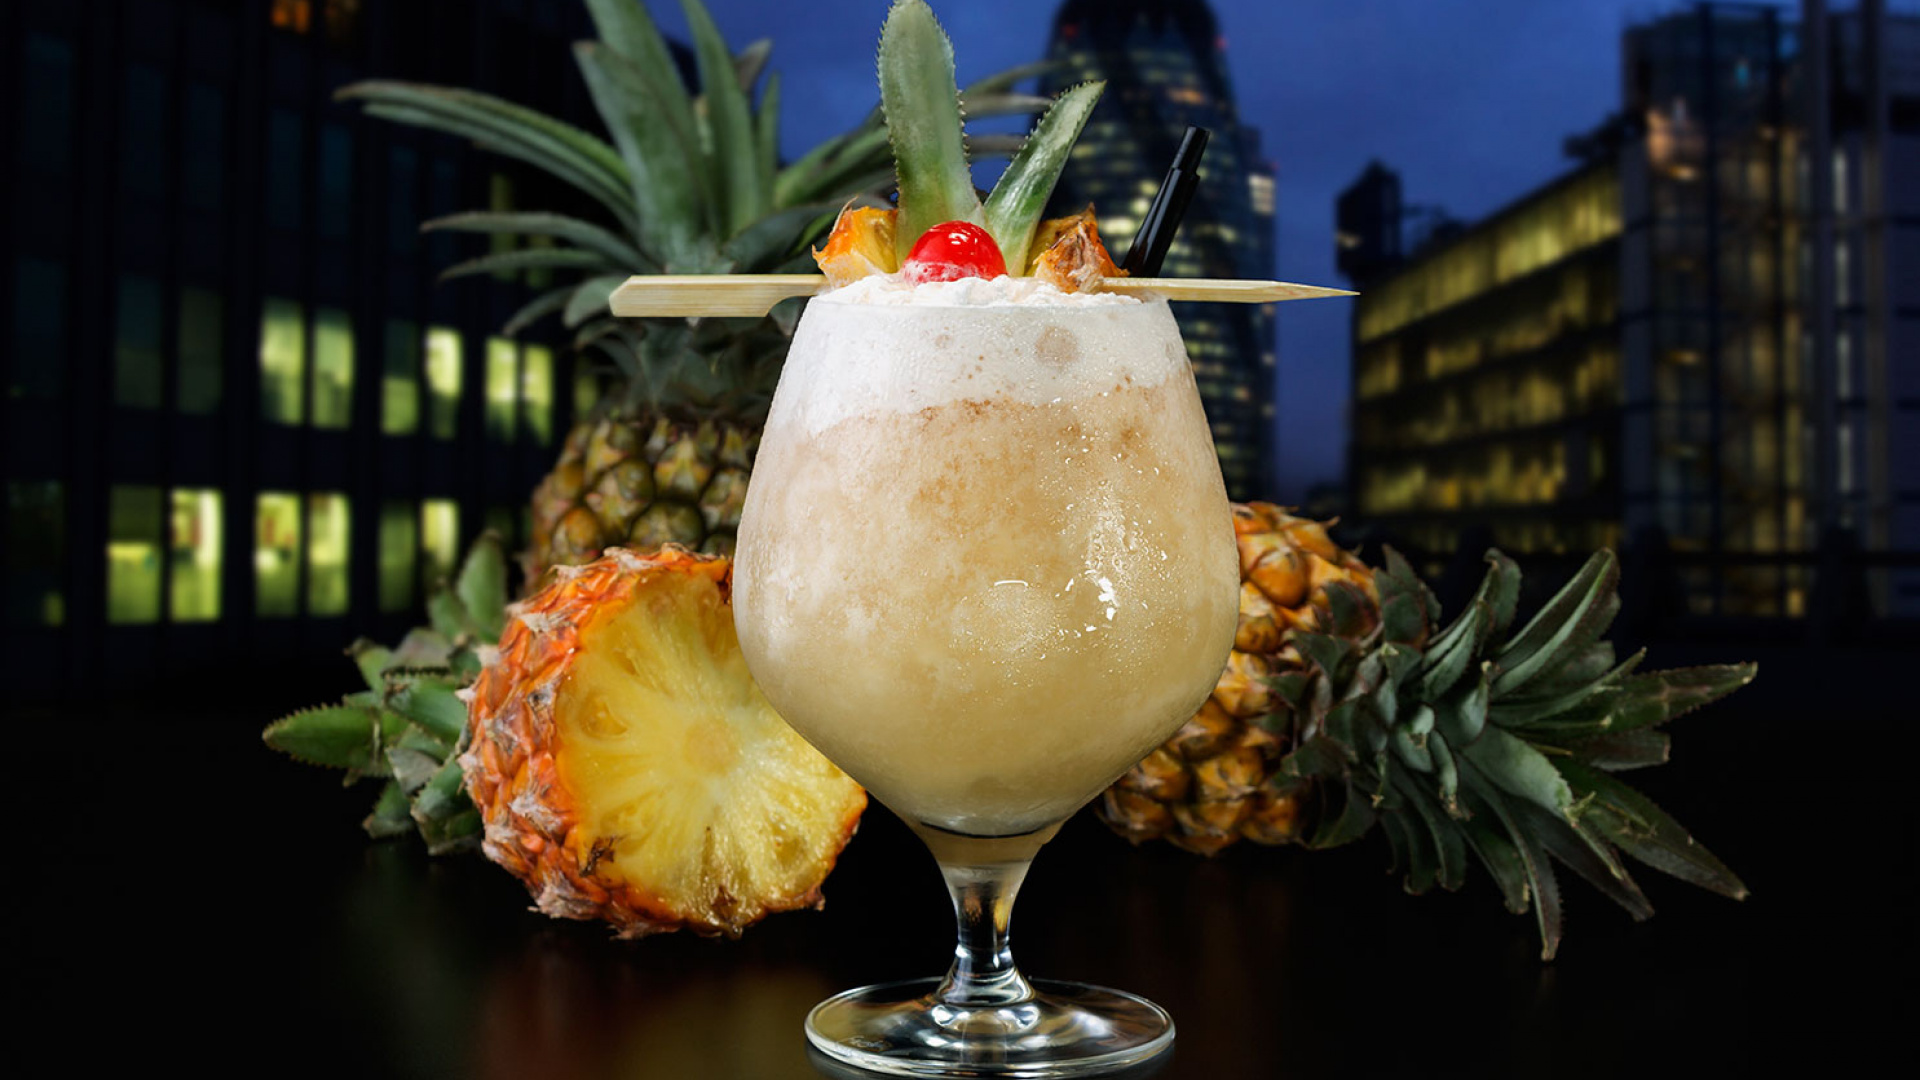 Skylounge's tequila colada